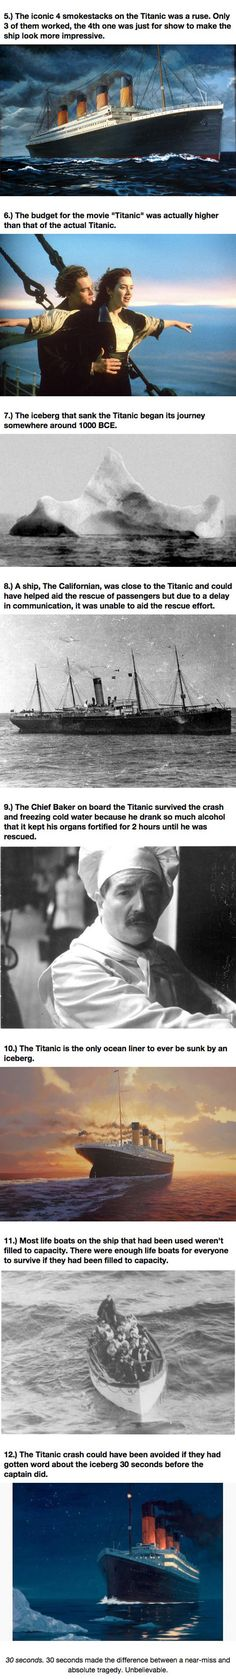 The Titanic would ironically have survived if it had hit the iceberg head on instead of along the side